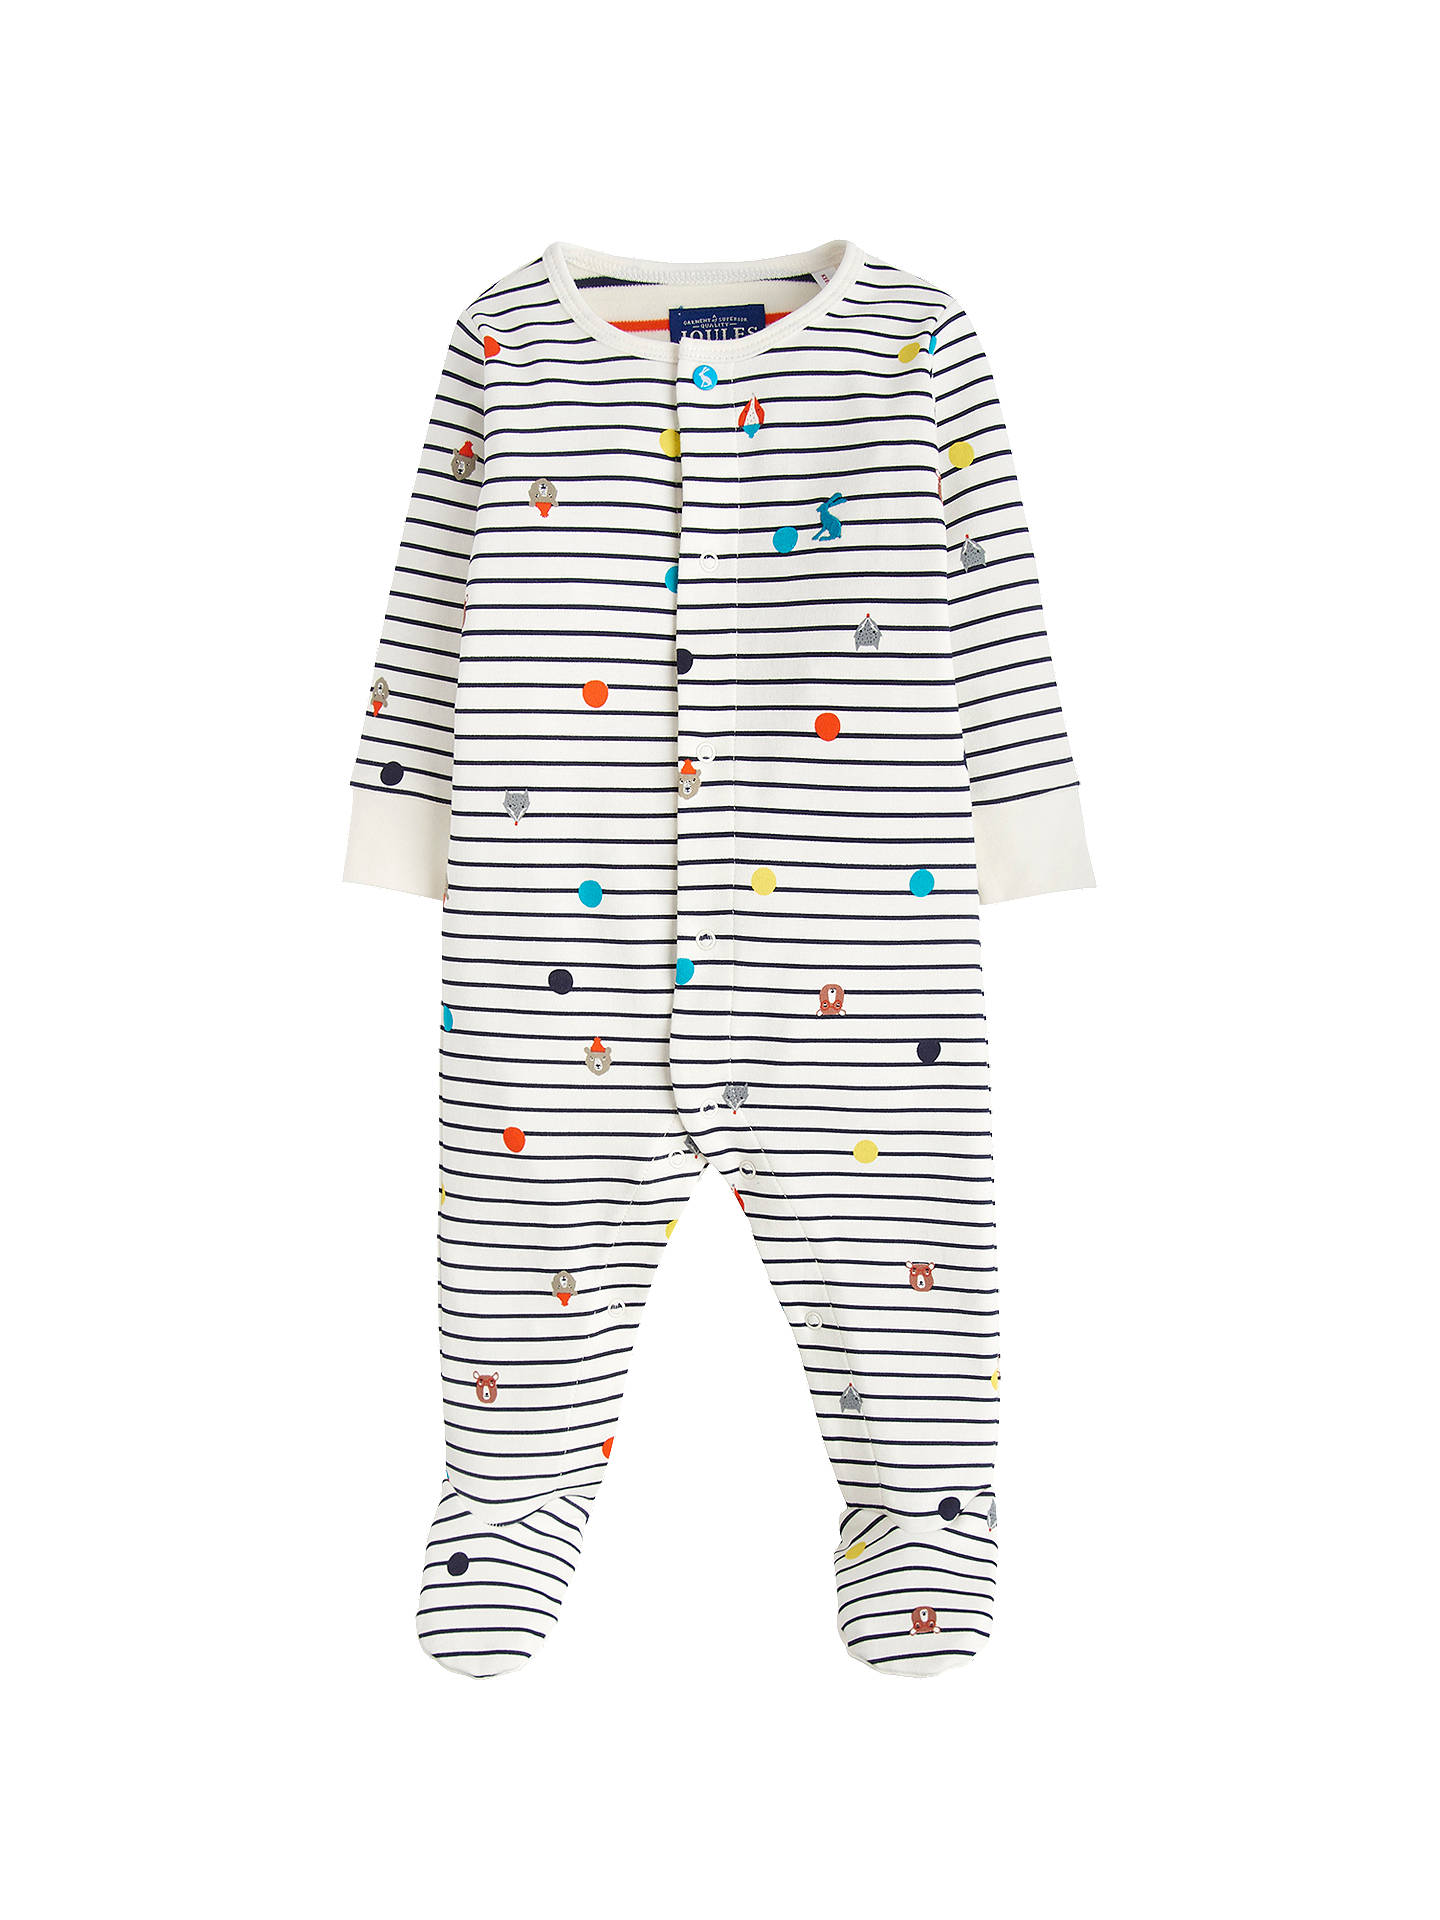 BuyBaby Joule Ziggy Stripe Sleepsuit, Cream/Navy, 0-3 months Online at johnlewis.com